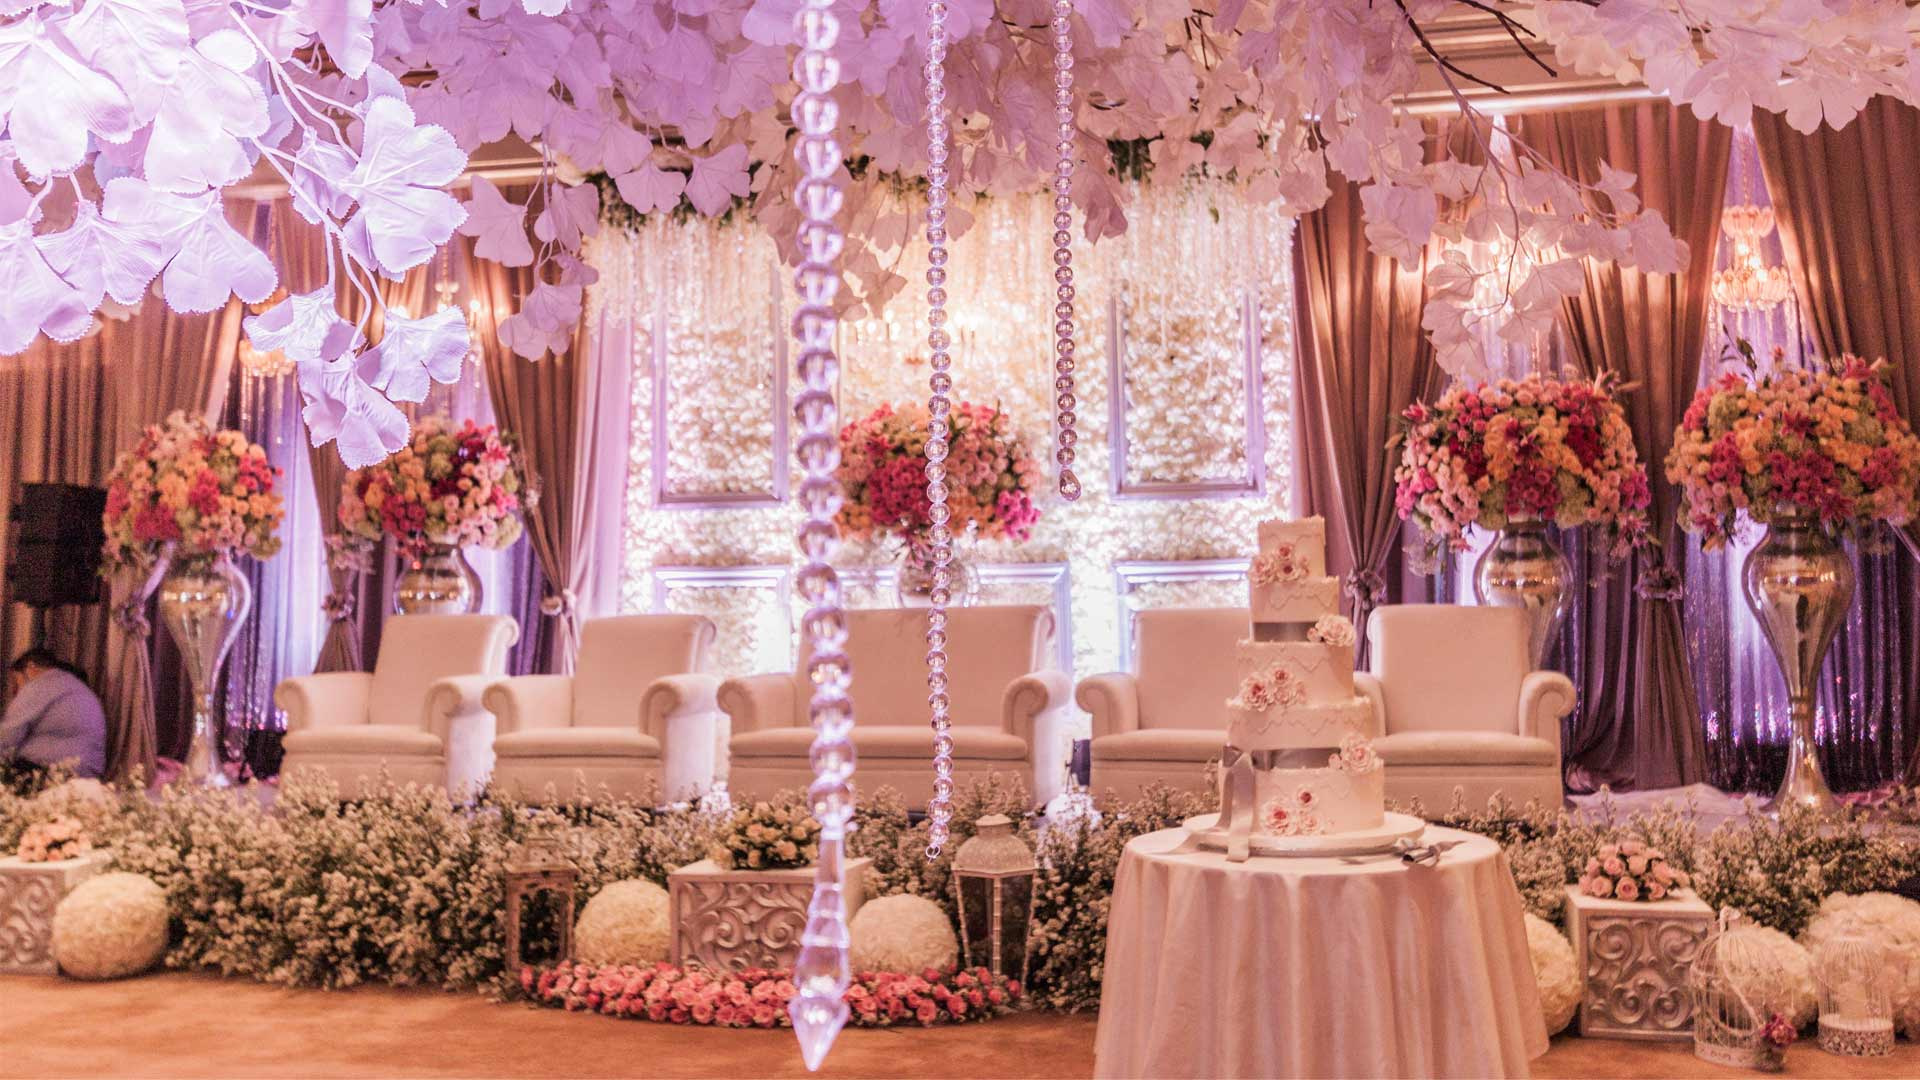 Wedding venue jakarta weddings at alila hotel in jakarta junglespirit Image collections